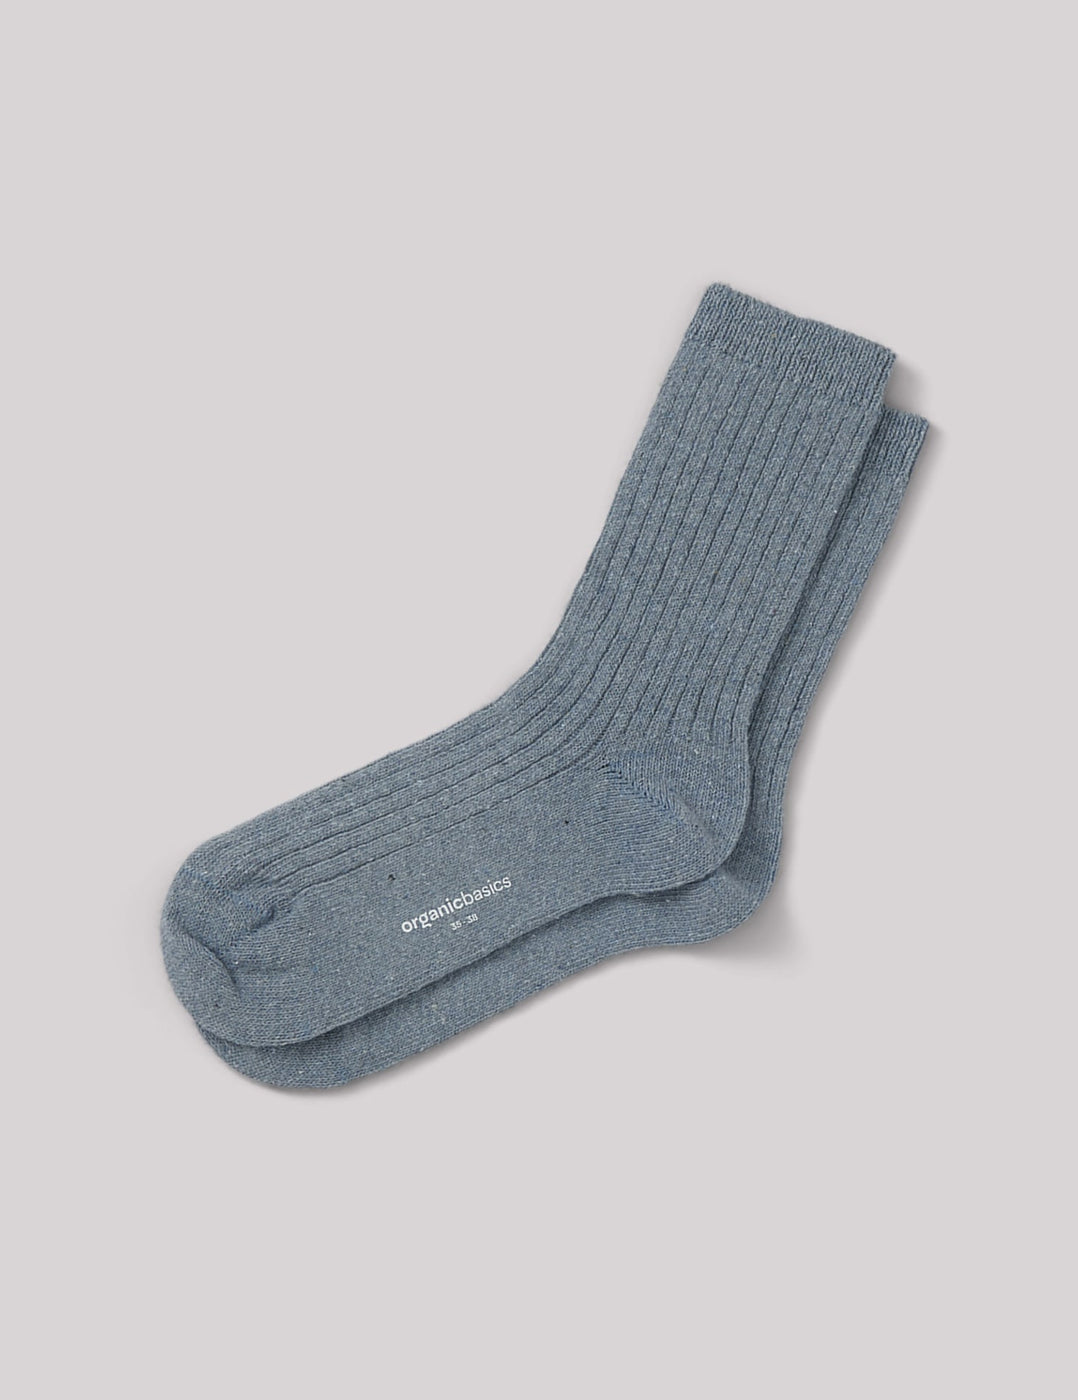 Recycled Denim Socks